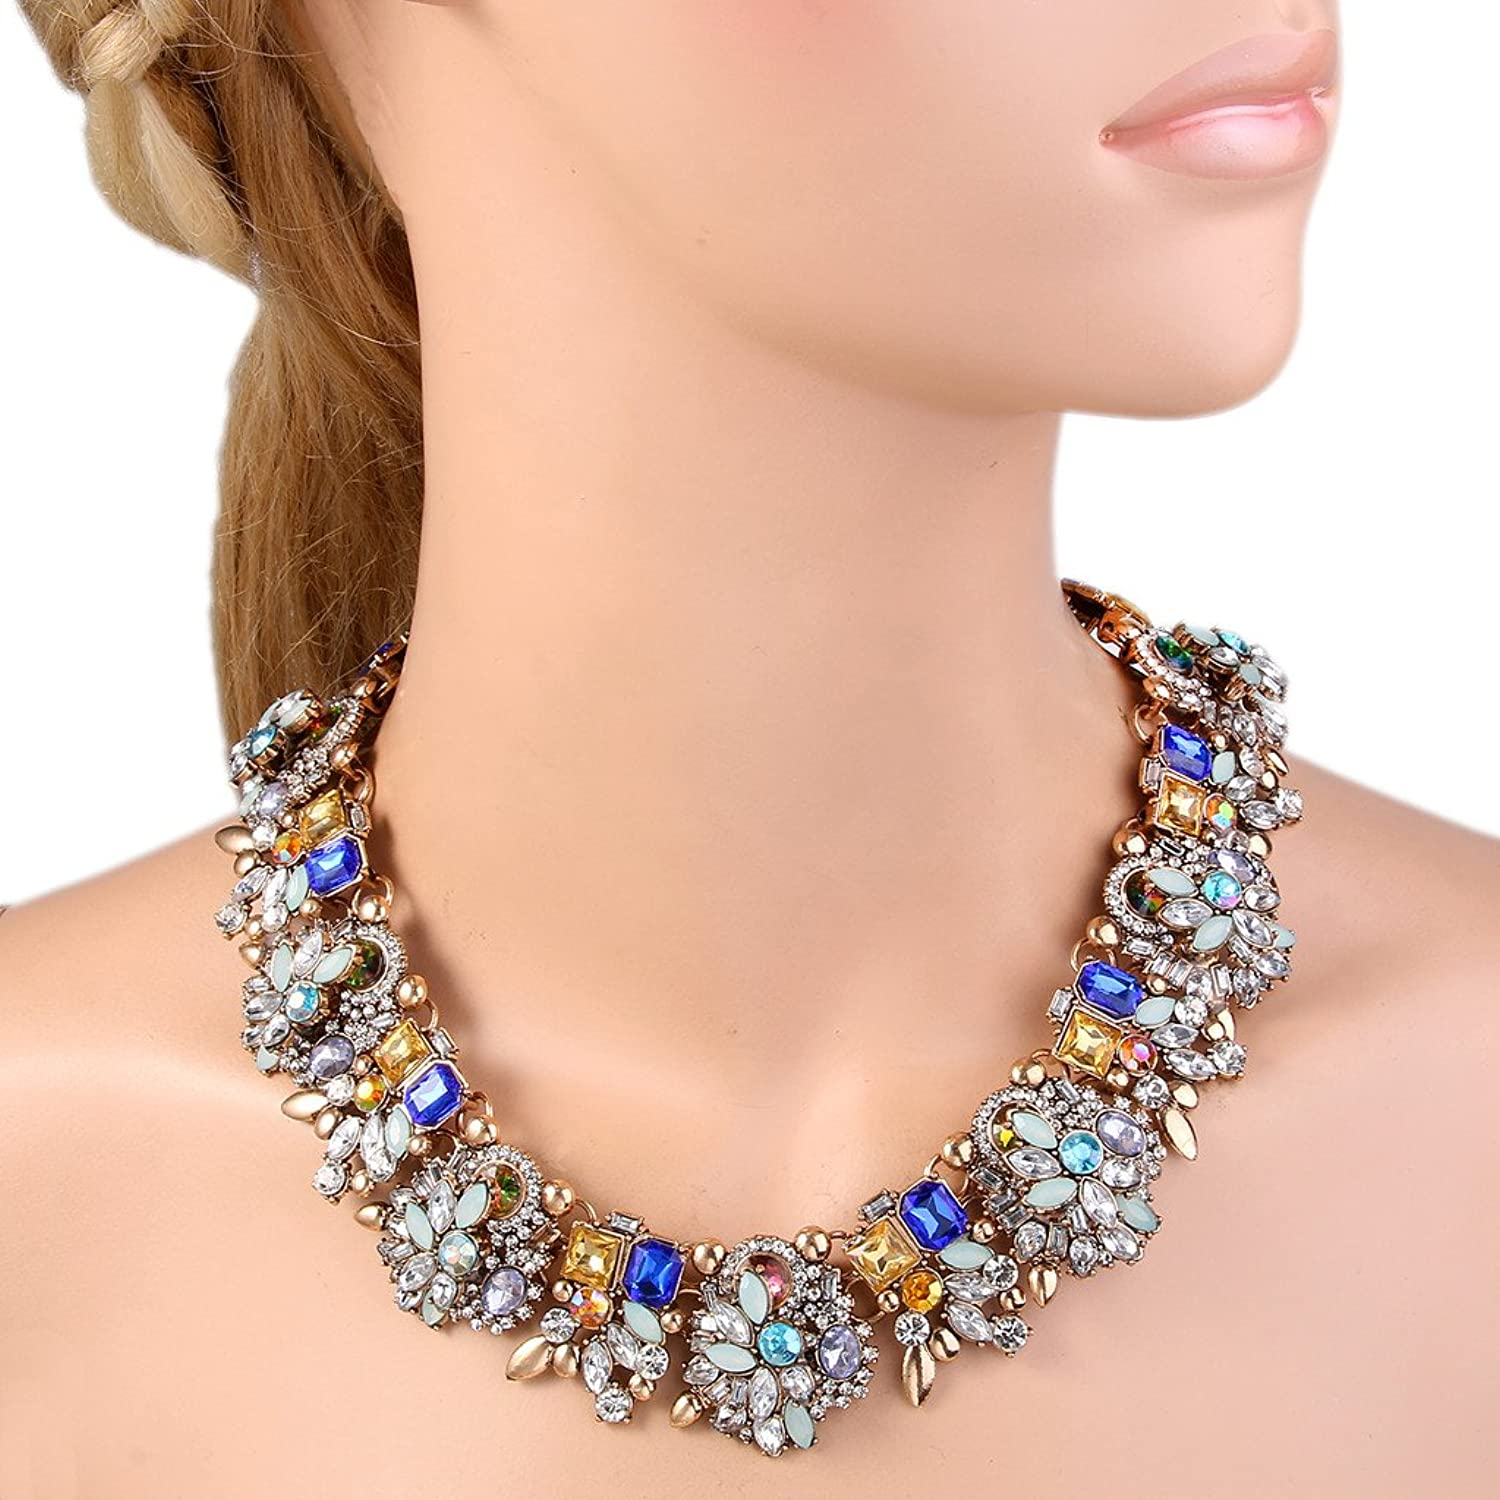 1940s Jewelry Styles and History  Art Deco Statement Necklace Austrian Crystal Gold-Tone $22.99 AT vintagedancer.com